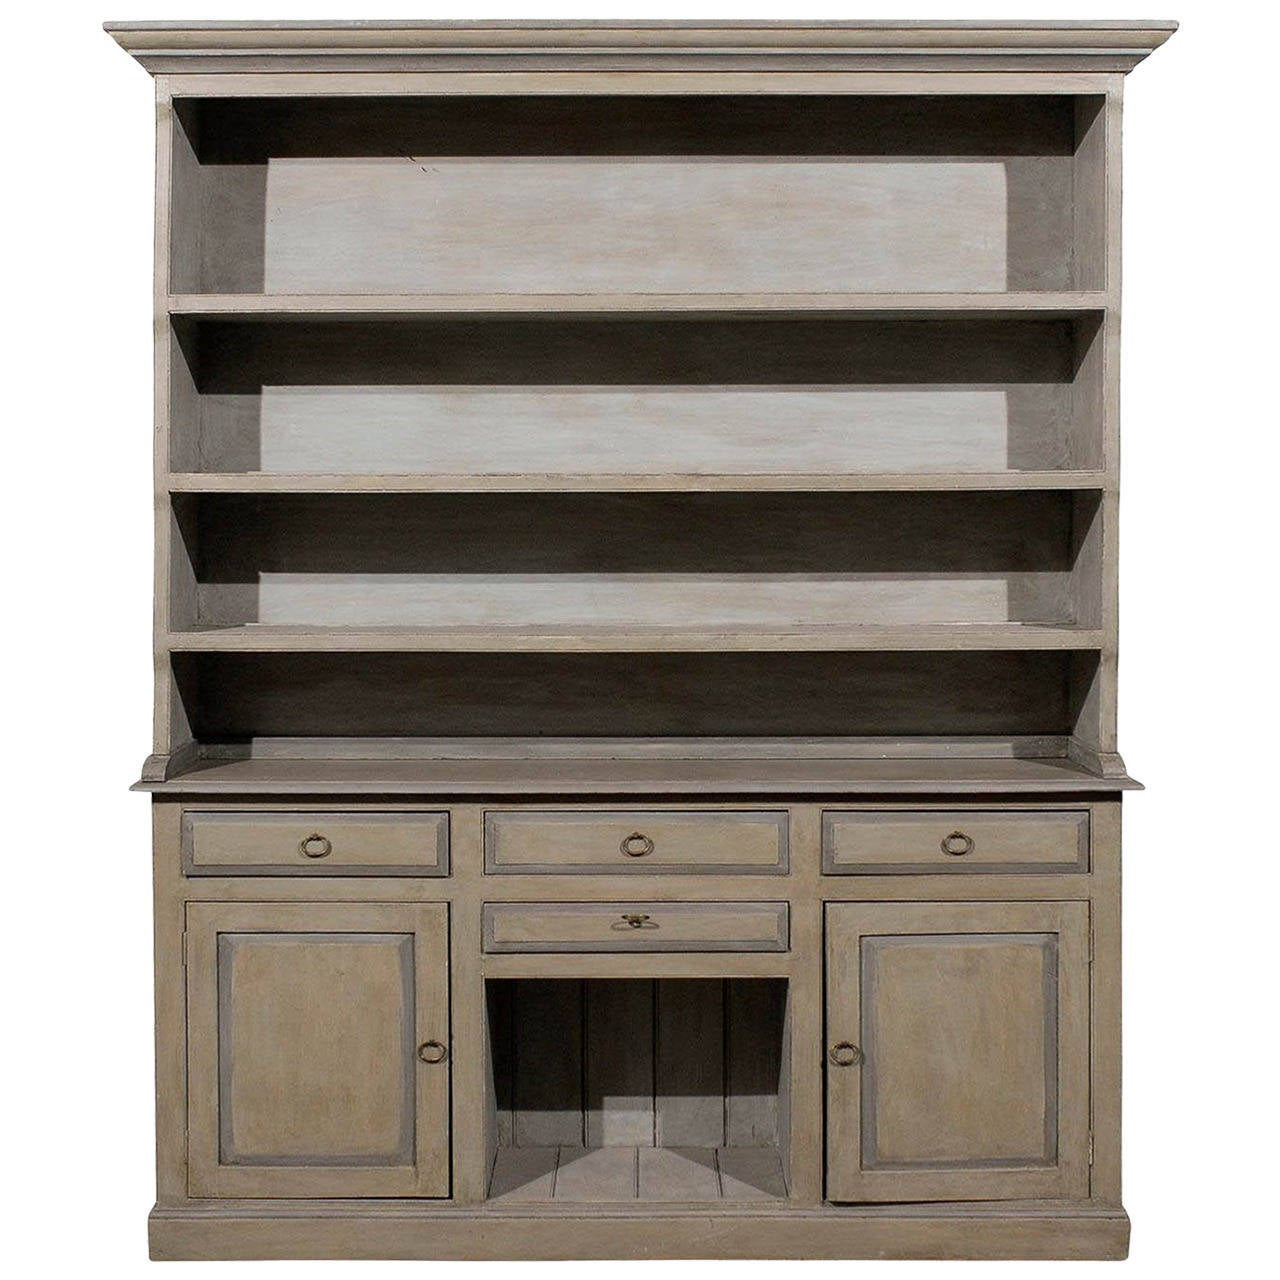 Painted Wood Furniture And Cabinets: American Painted Wood Cabinet From The 1920s For Sale At